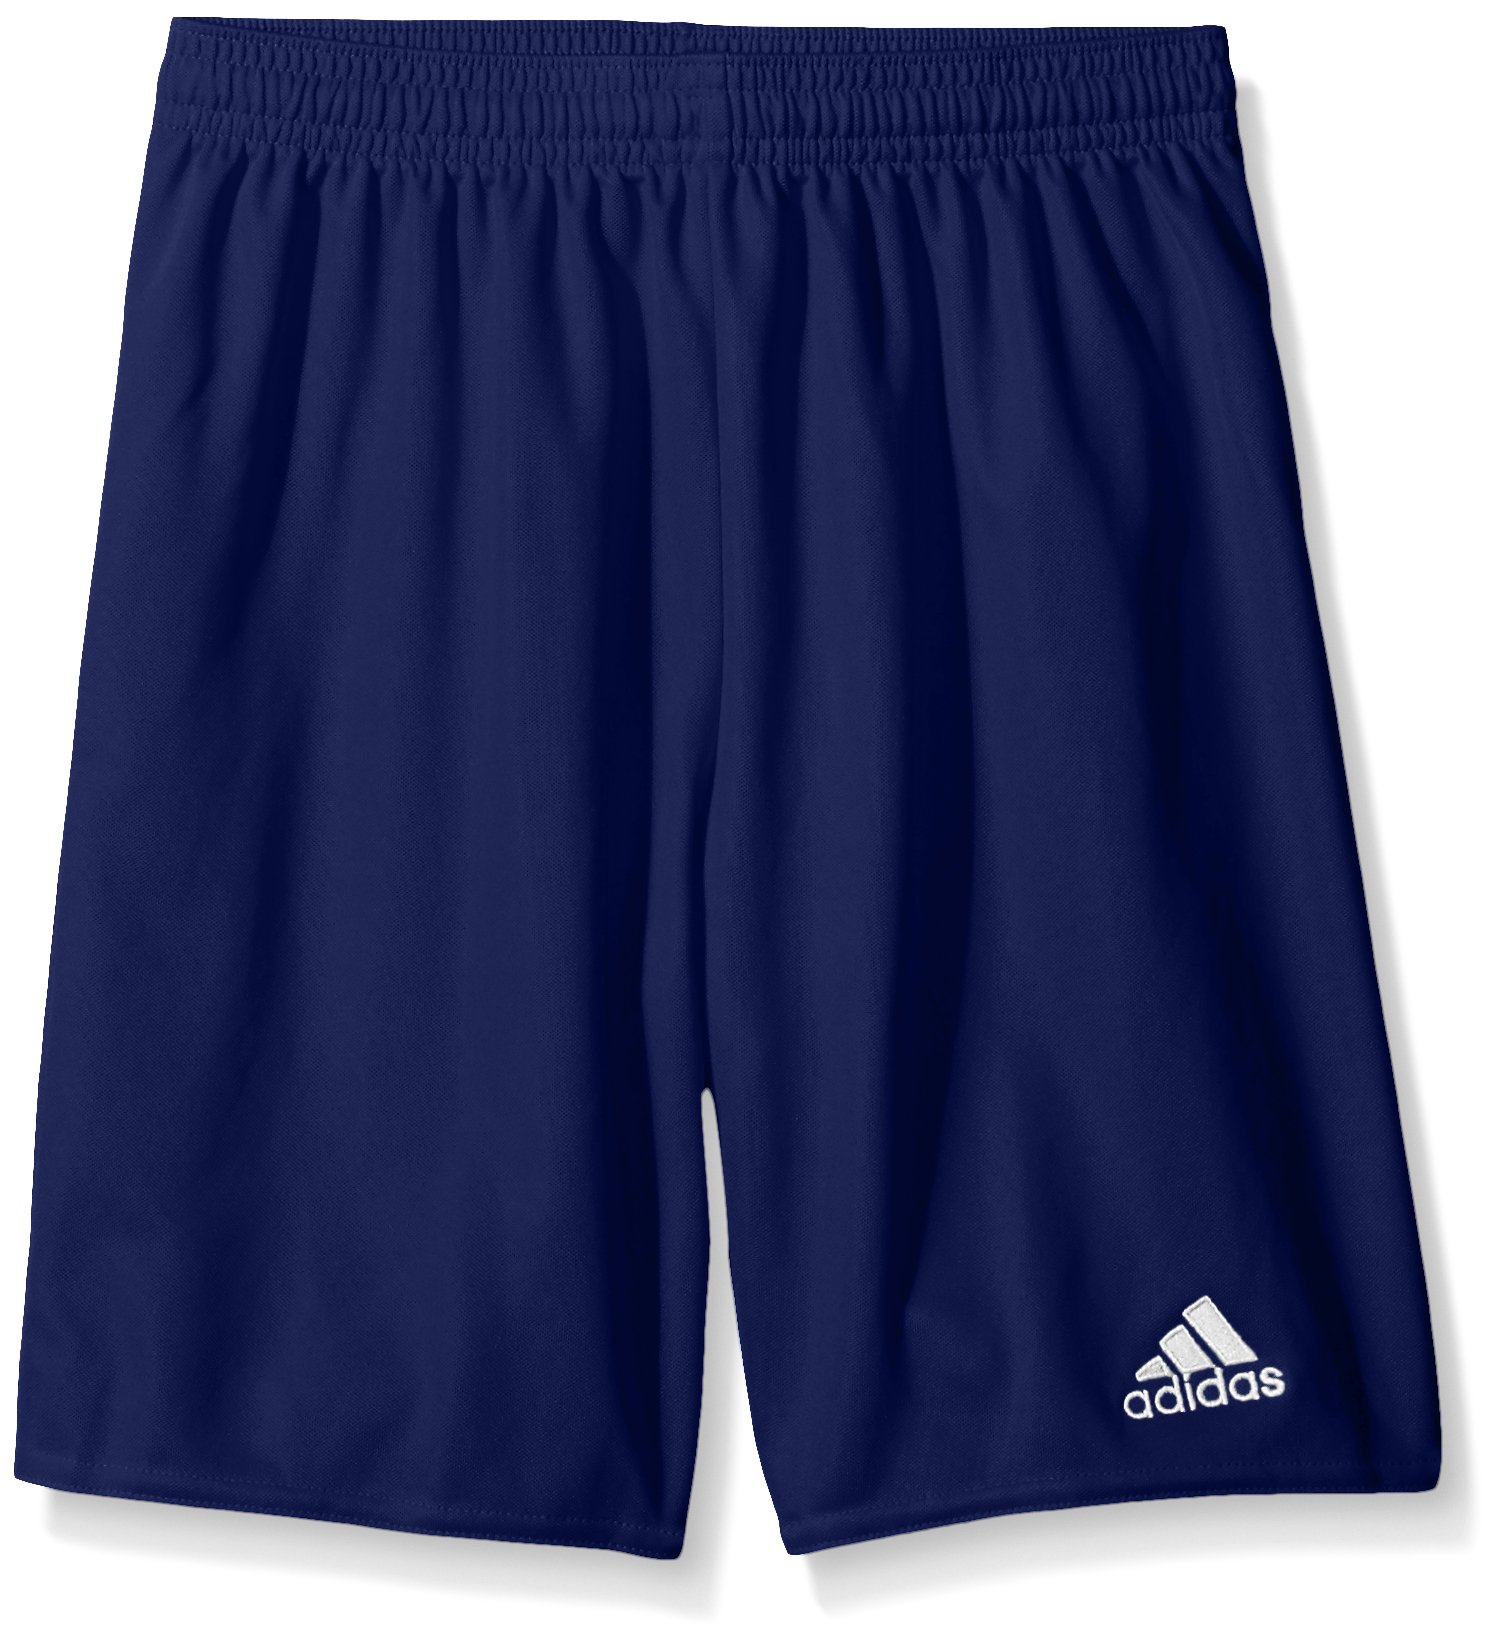 adidas Youth Parma 16 Shorts, Dark Blue/White, X-Small by adidas